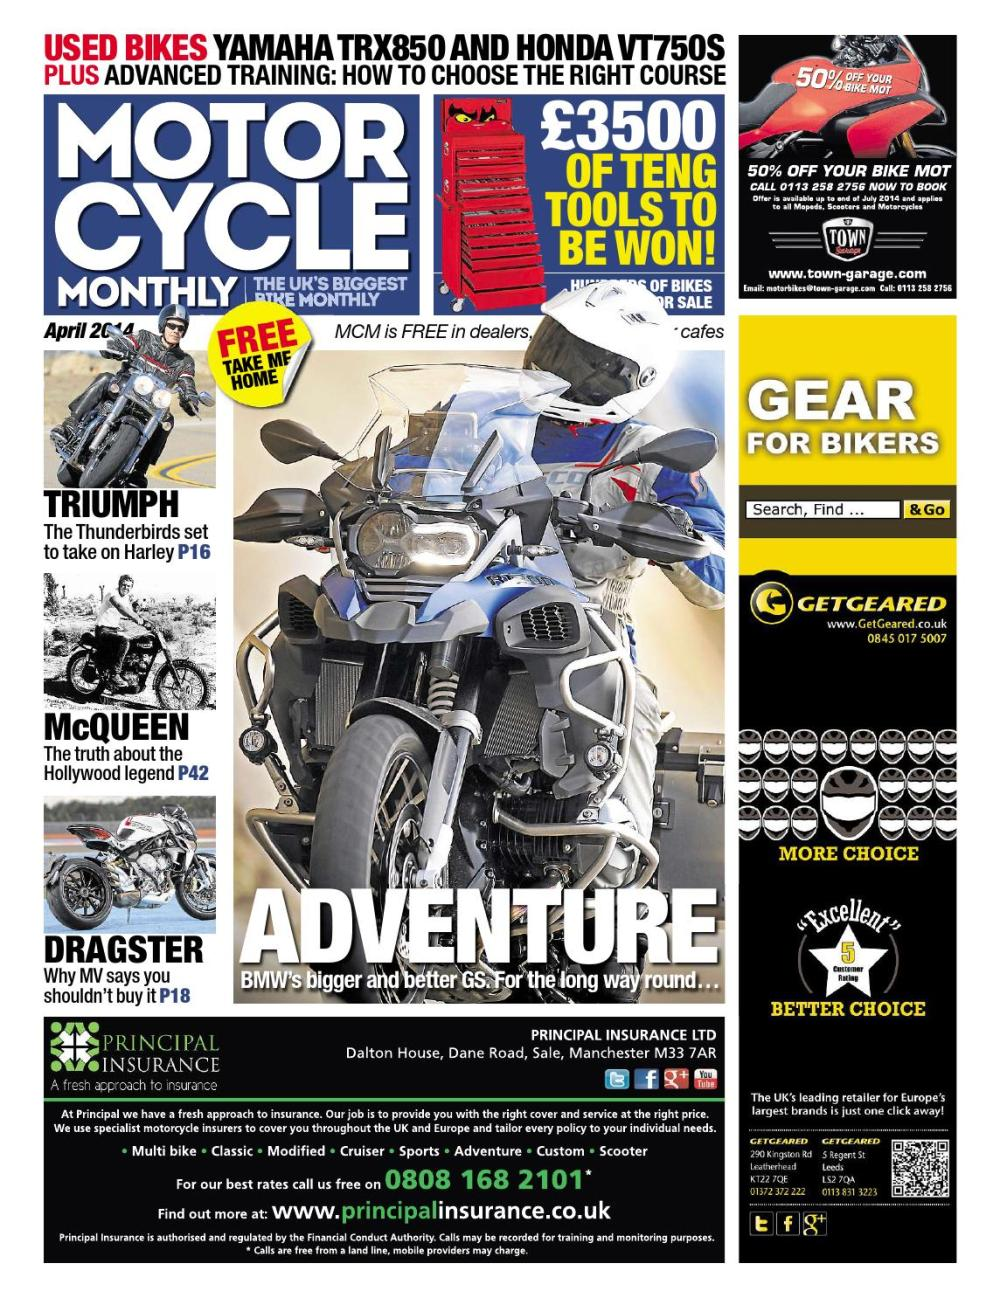 medium resolution of motor cycle monthly april 2014 full edition by mortons media group ltd issuu